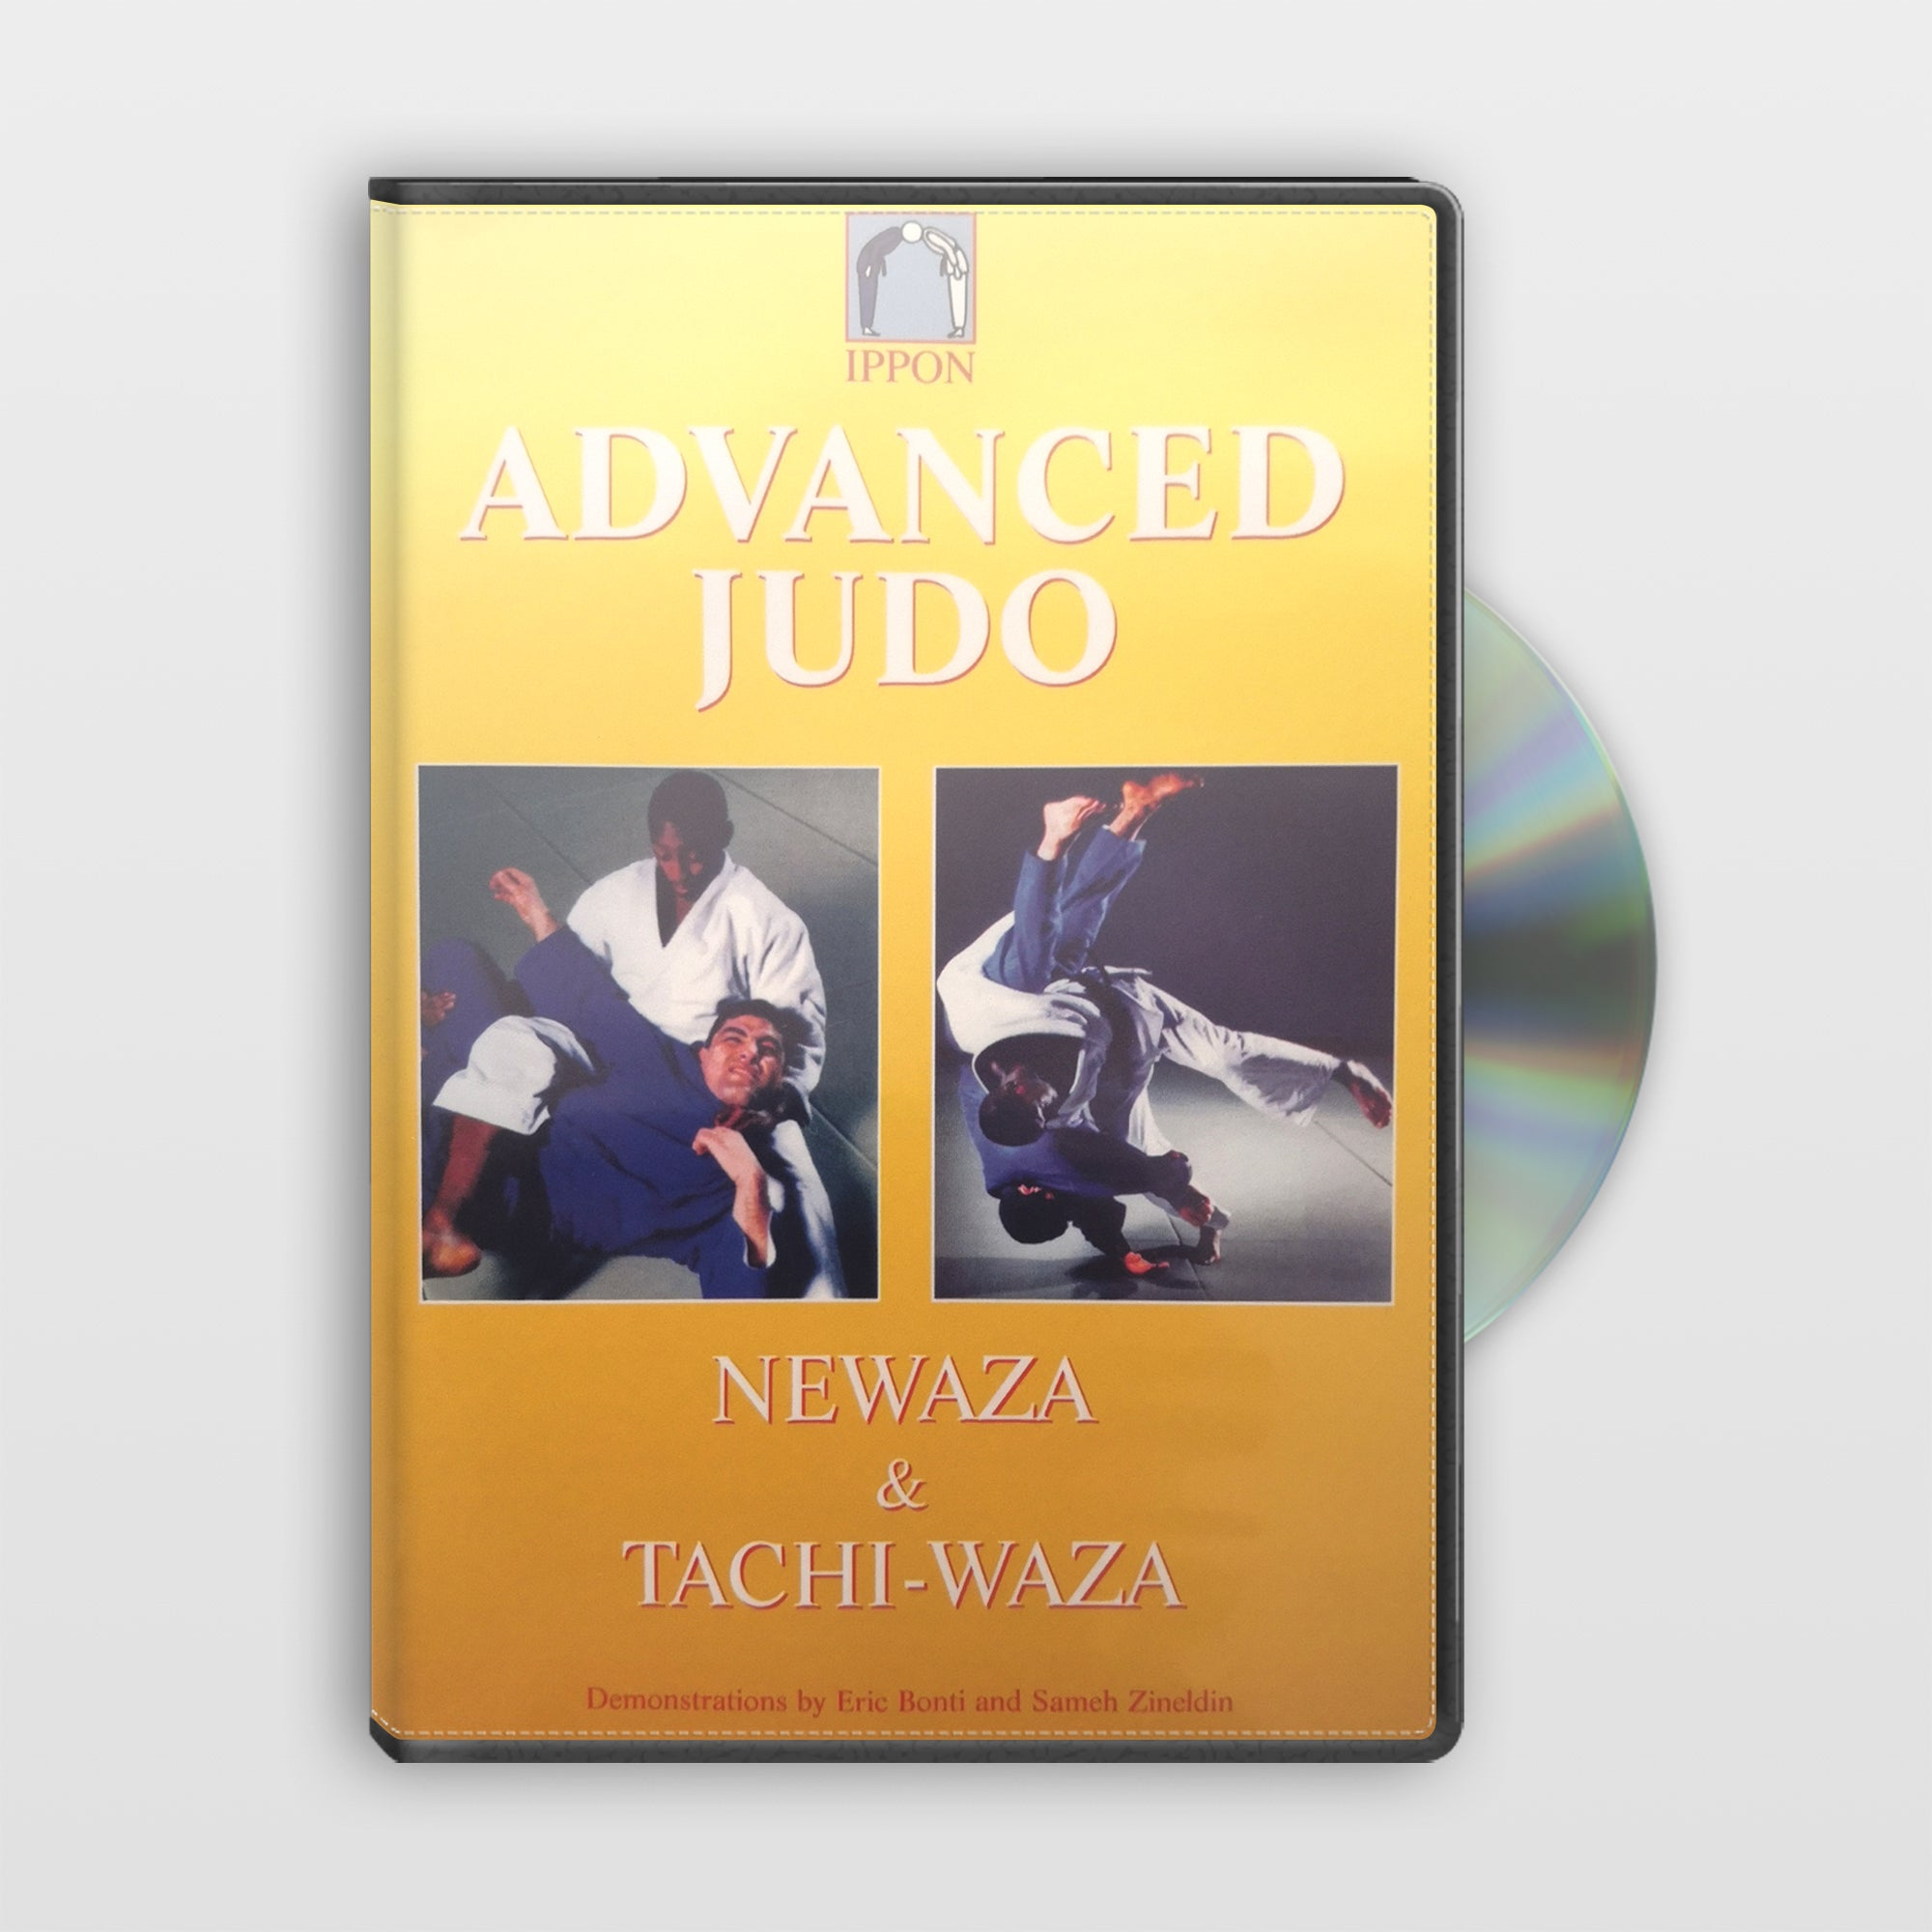 ADVANCED JUDO - Newaza & Tachi-Waza